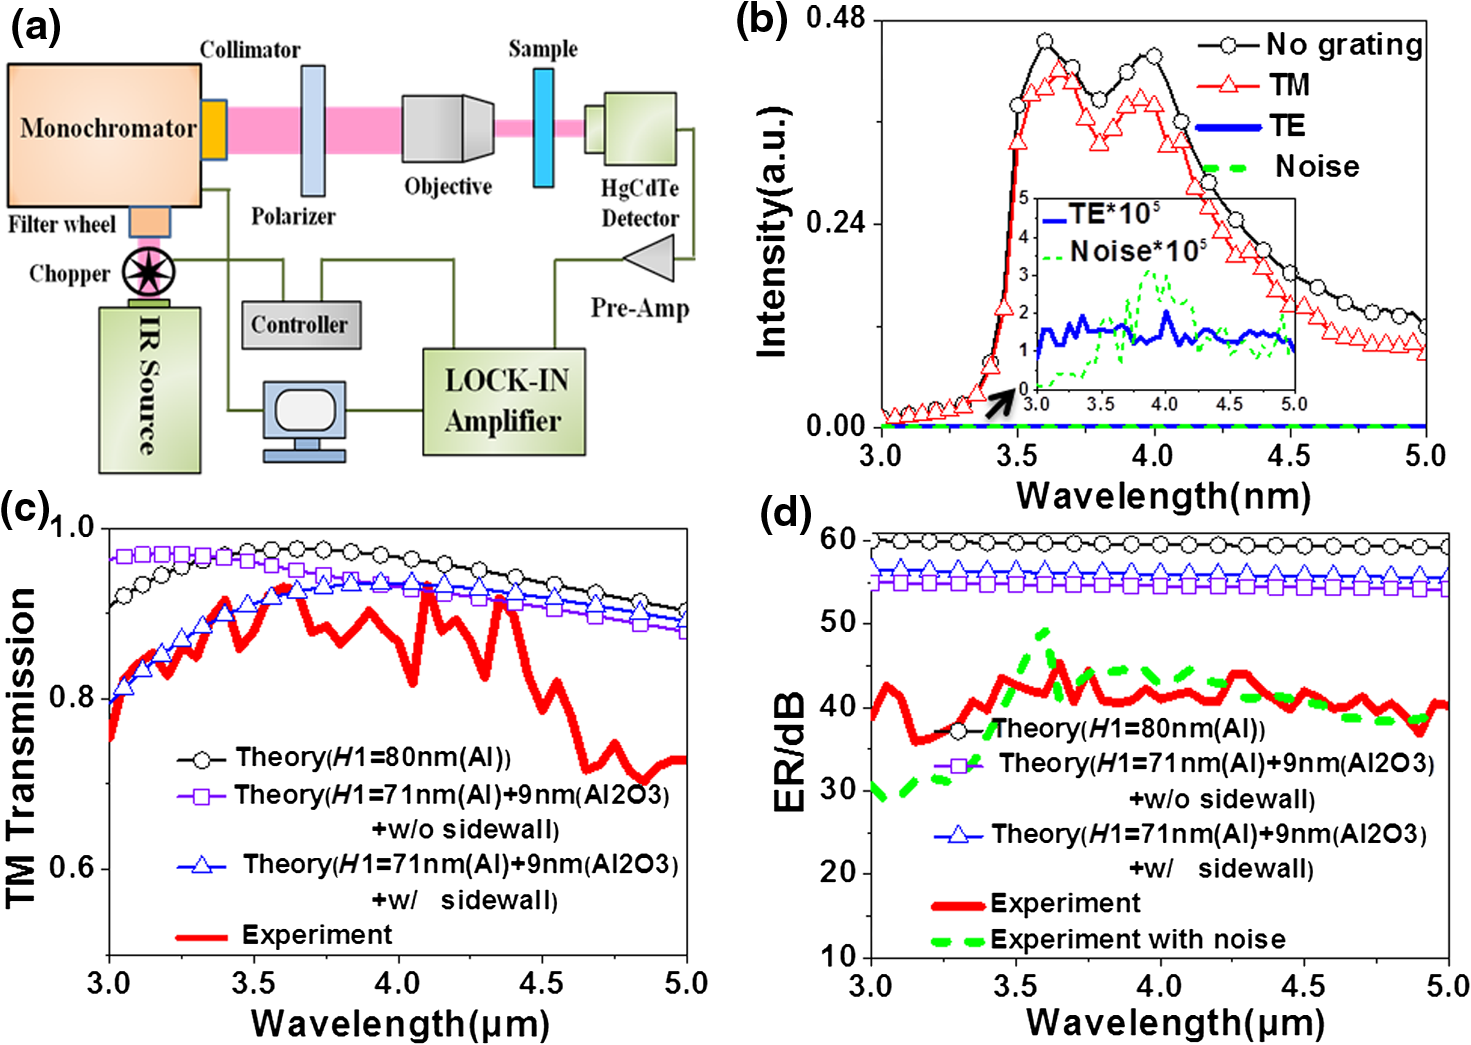 Design And Fabrication Of Silicon Based Linear Polarizer With Light Emitting Diode Circuit Http Wwwdatasheetdircom Dcdc B Experimental Results The Measured Transmitting Intensity Spectra Tm Polarized Te Incident Lights C Tmt Spectrum